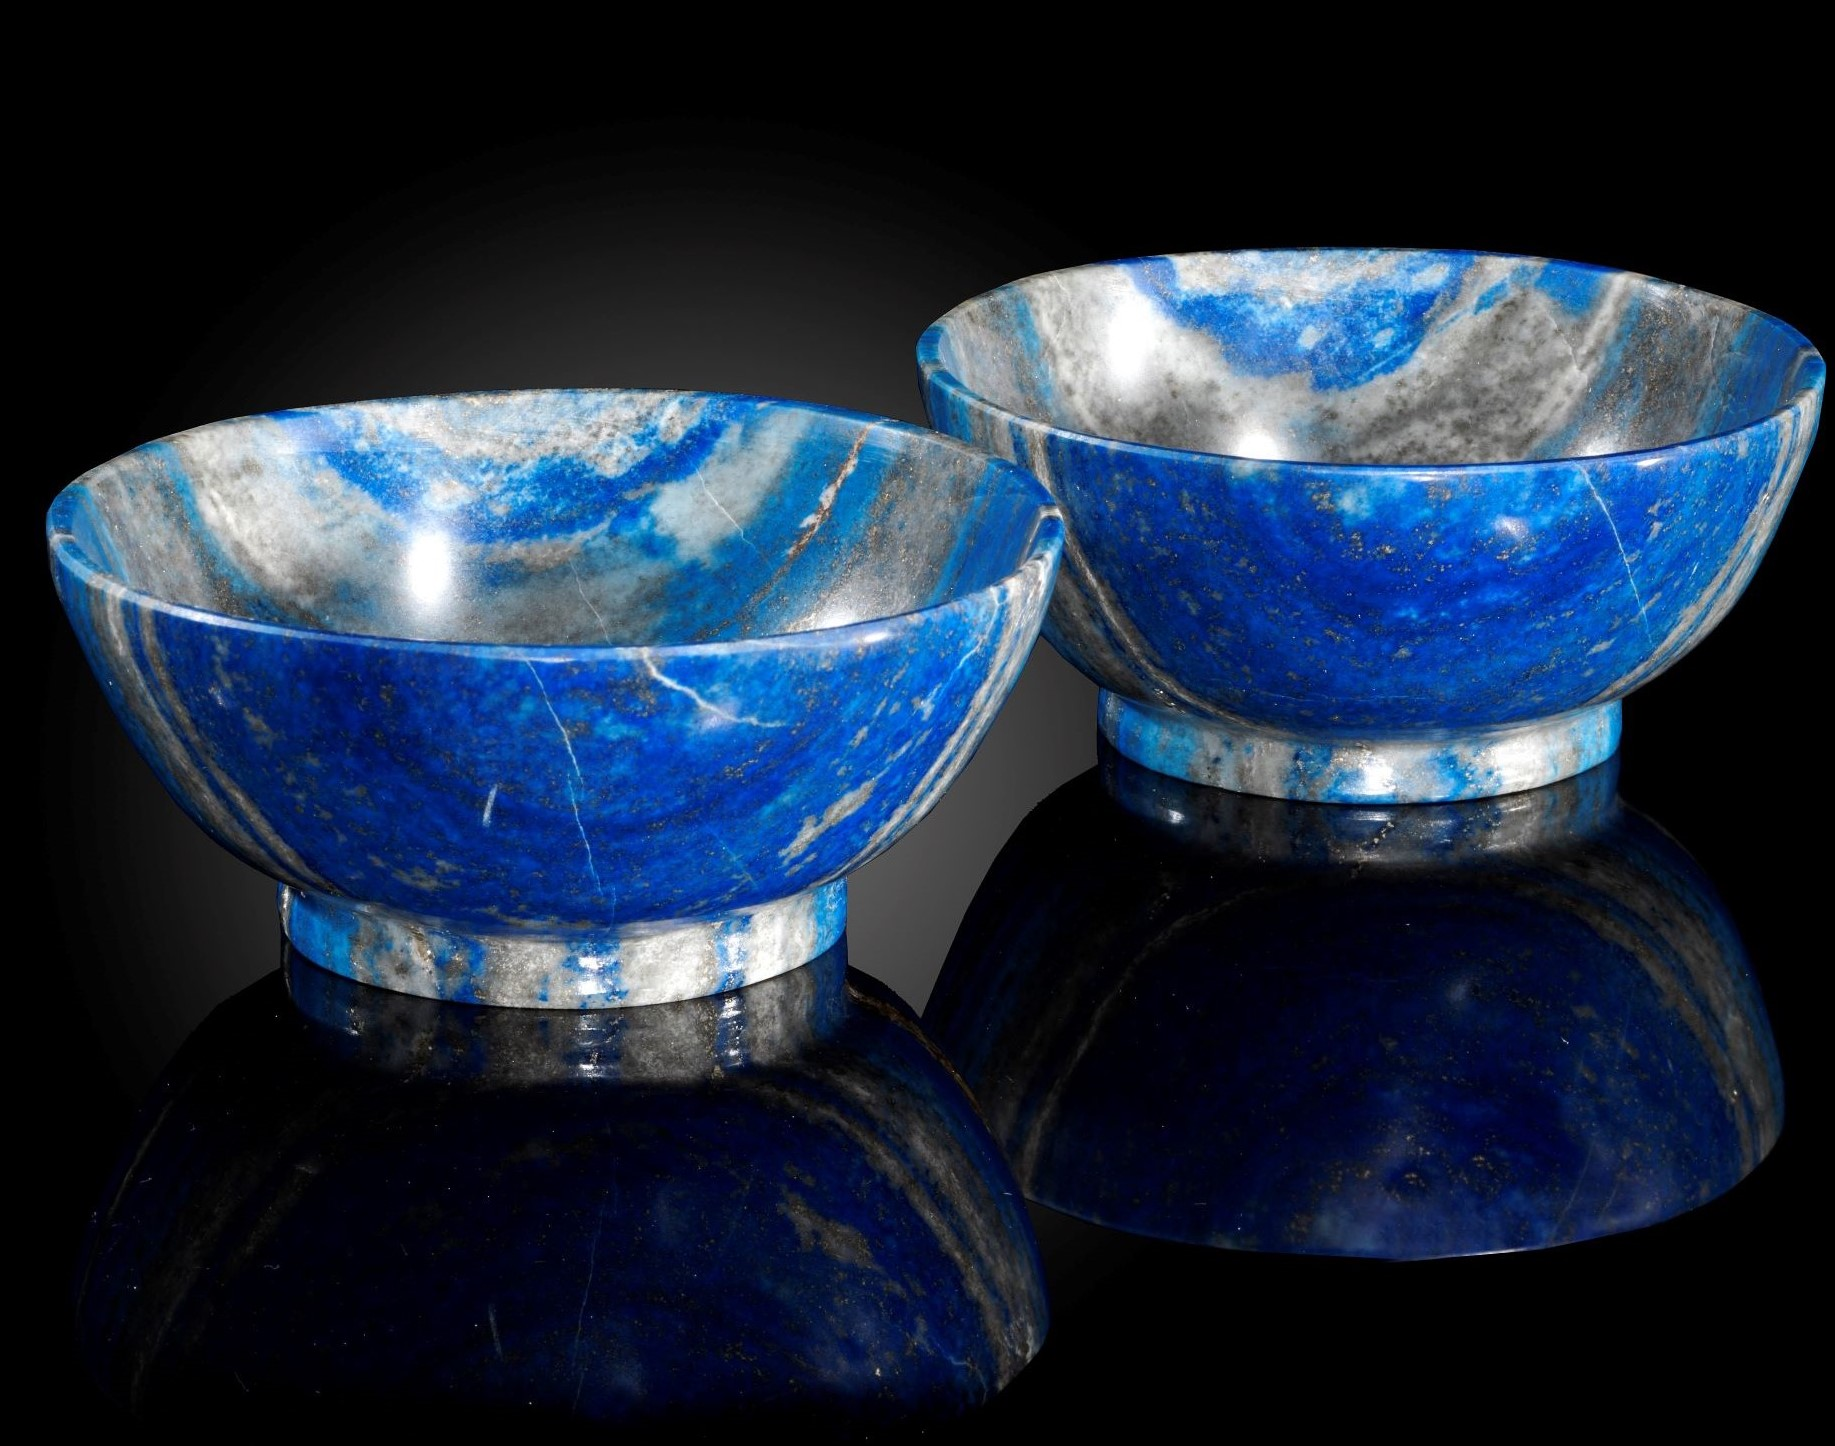 Lot 20 - Interior Design/Minerals: A pair of striated matching Lapis lazuli bowls, in presentation box,